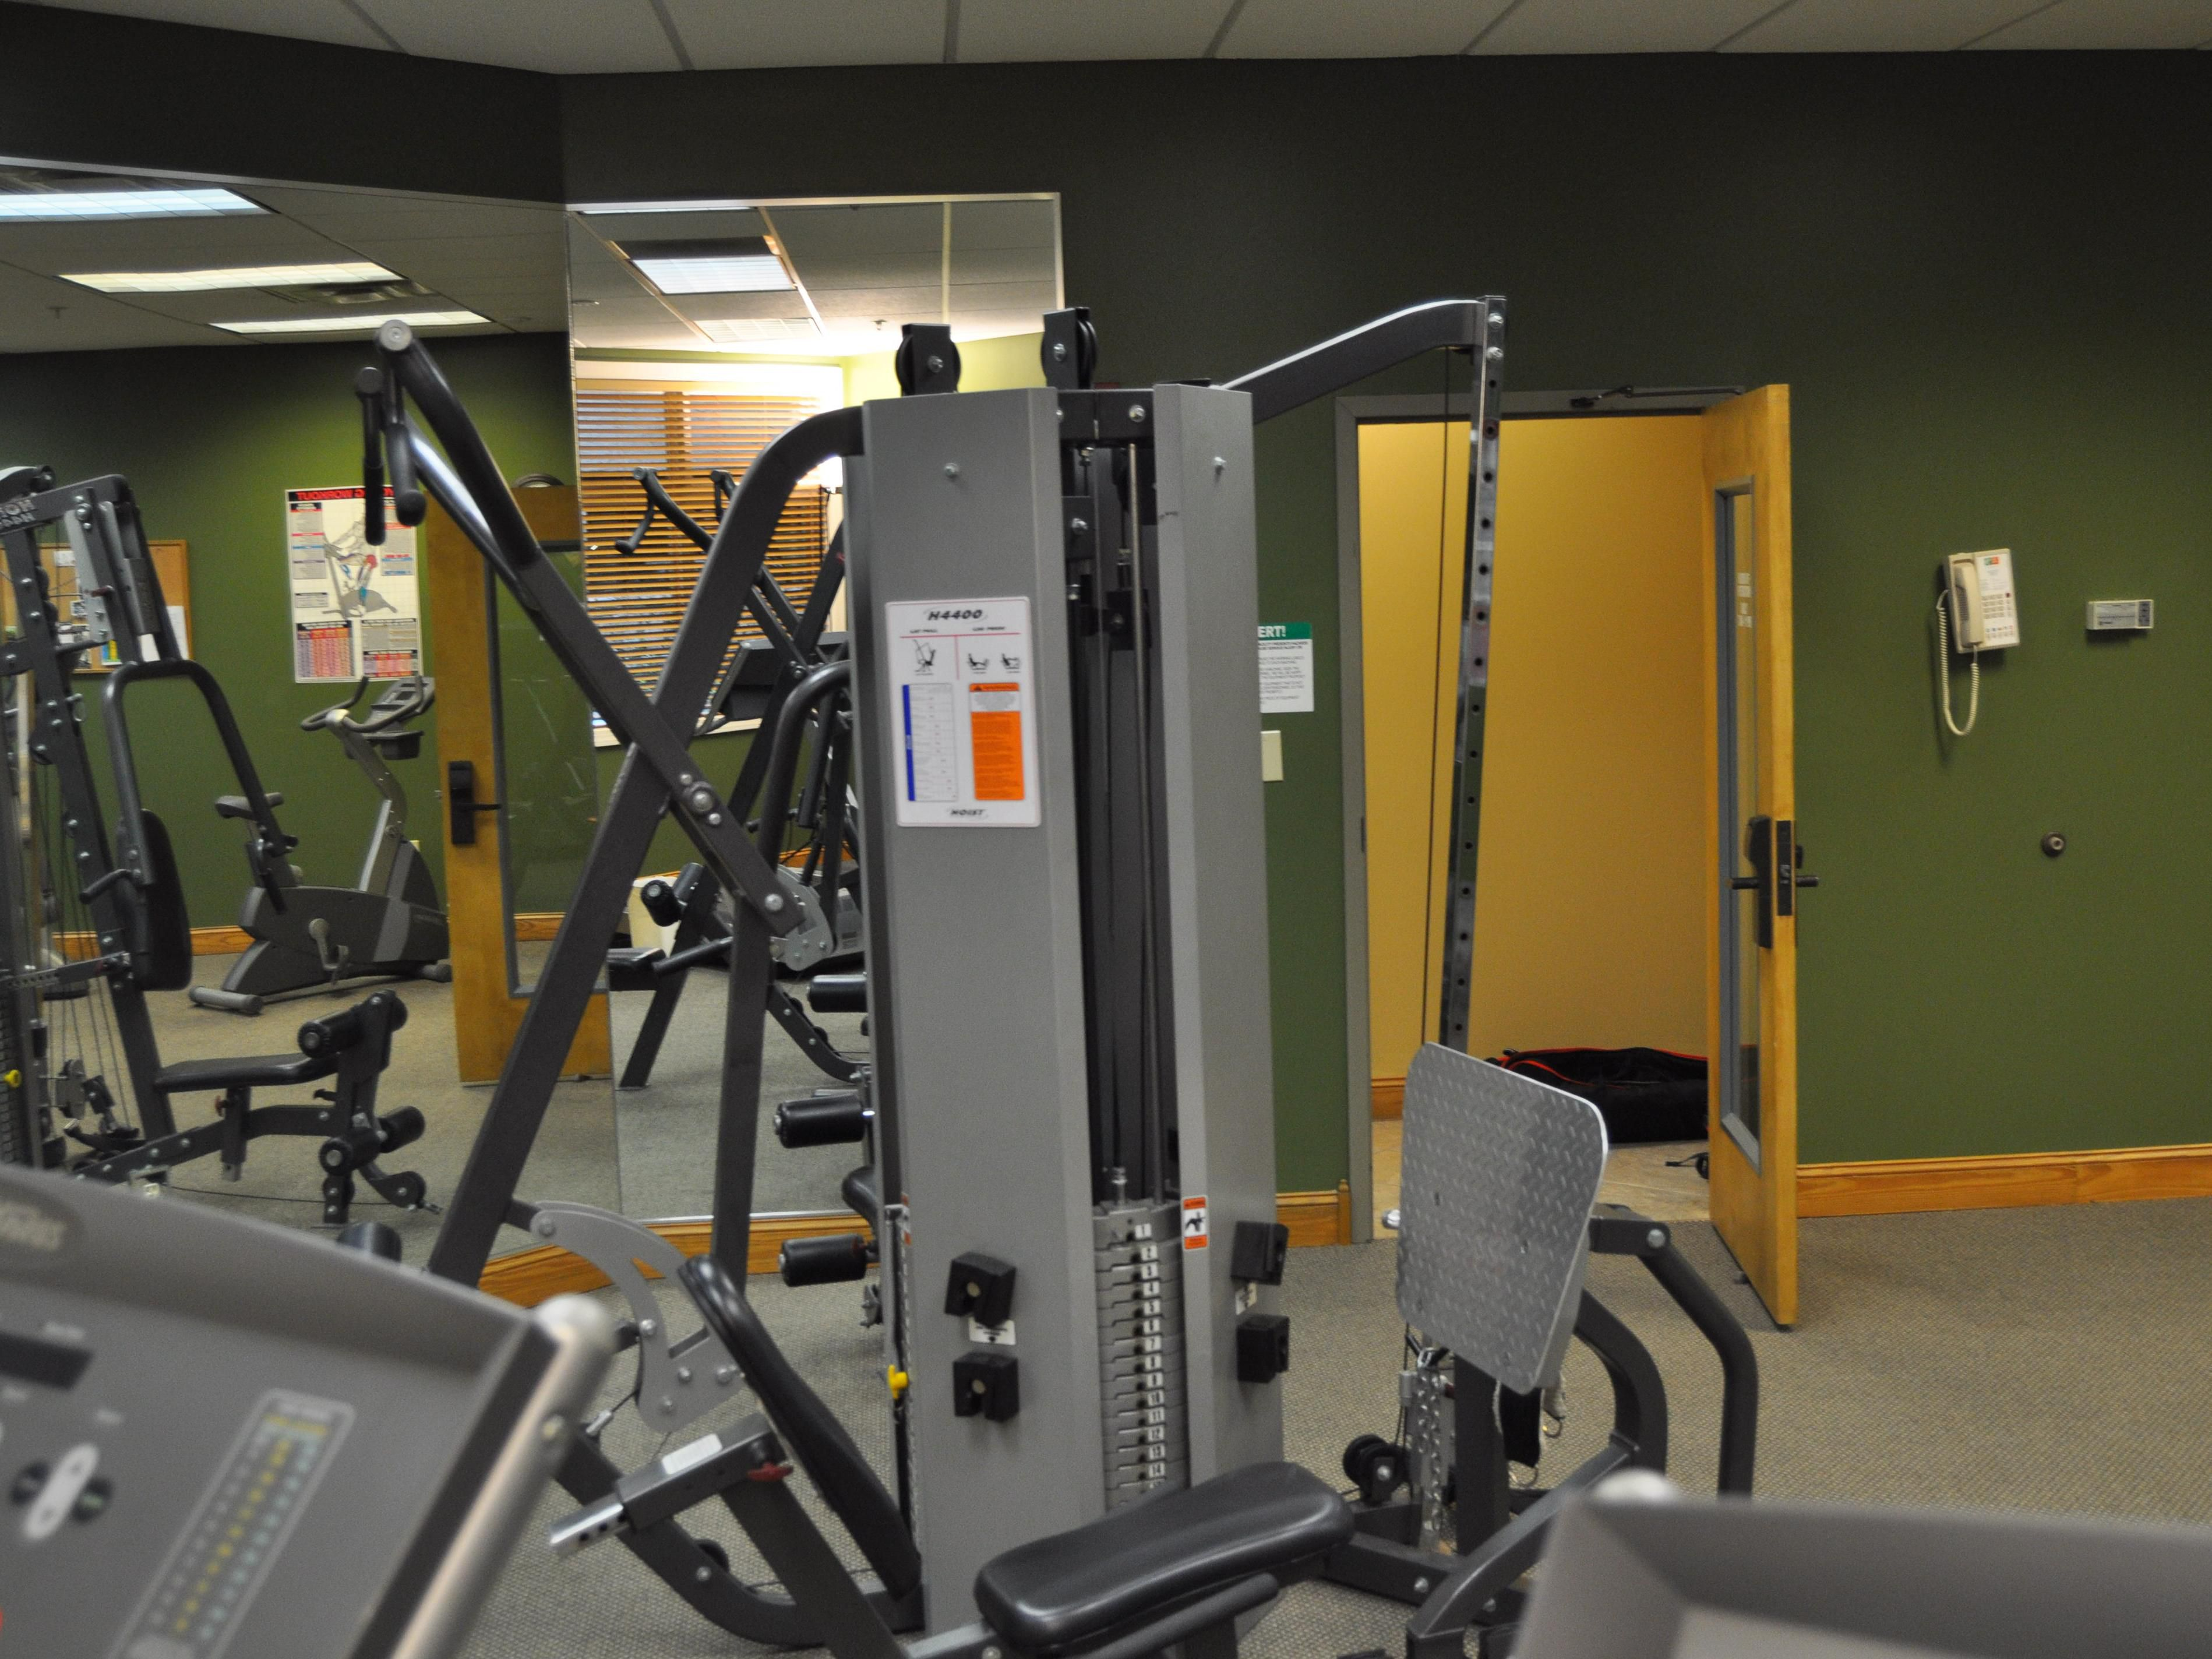 Stay on track at River Island Mussels Fitness Center